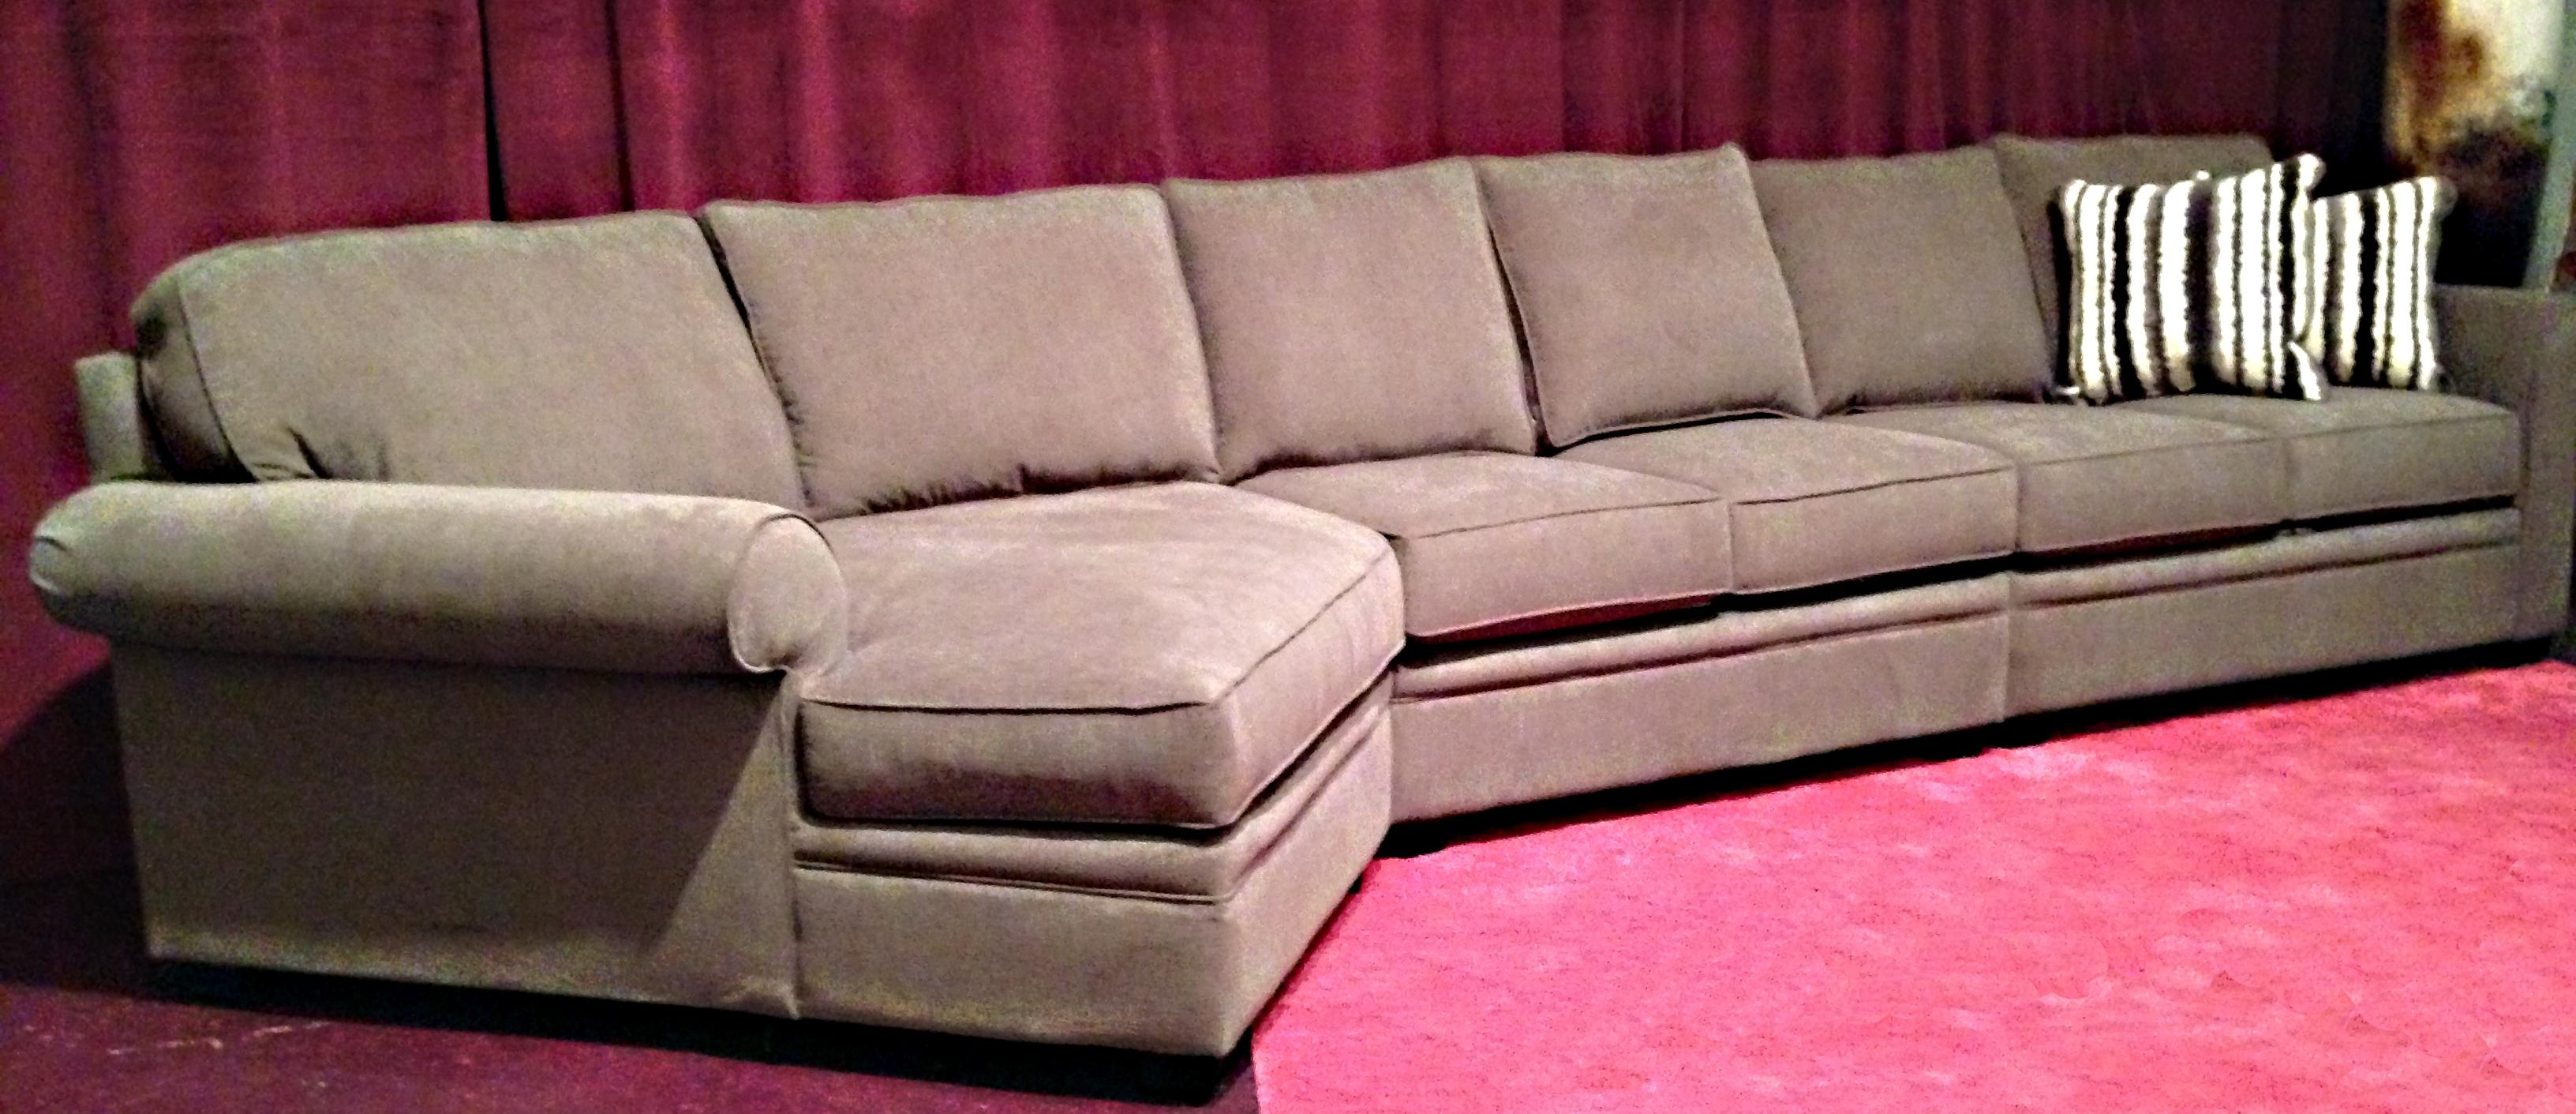 Sofas: Curved Sectional Sofa | Oversized Sofas | Recliner Sectional Within Circular Sectional Sofa (Image 14 of 15)